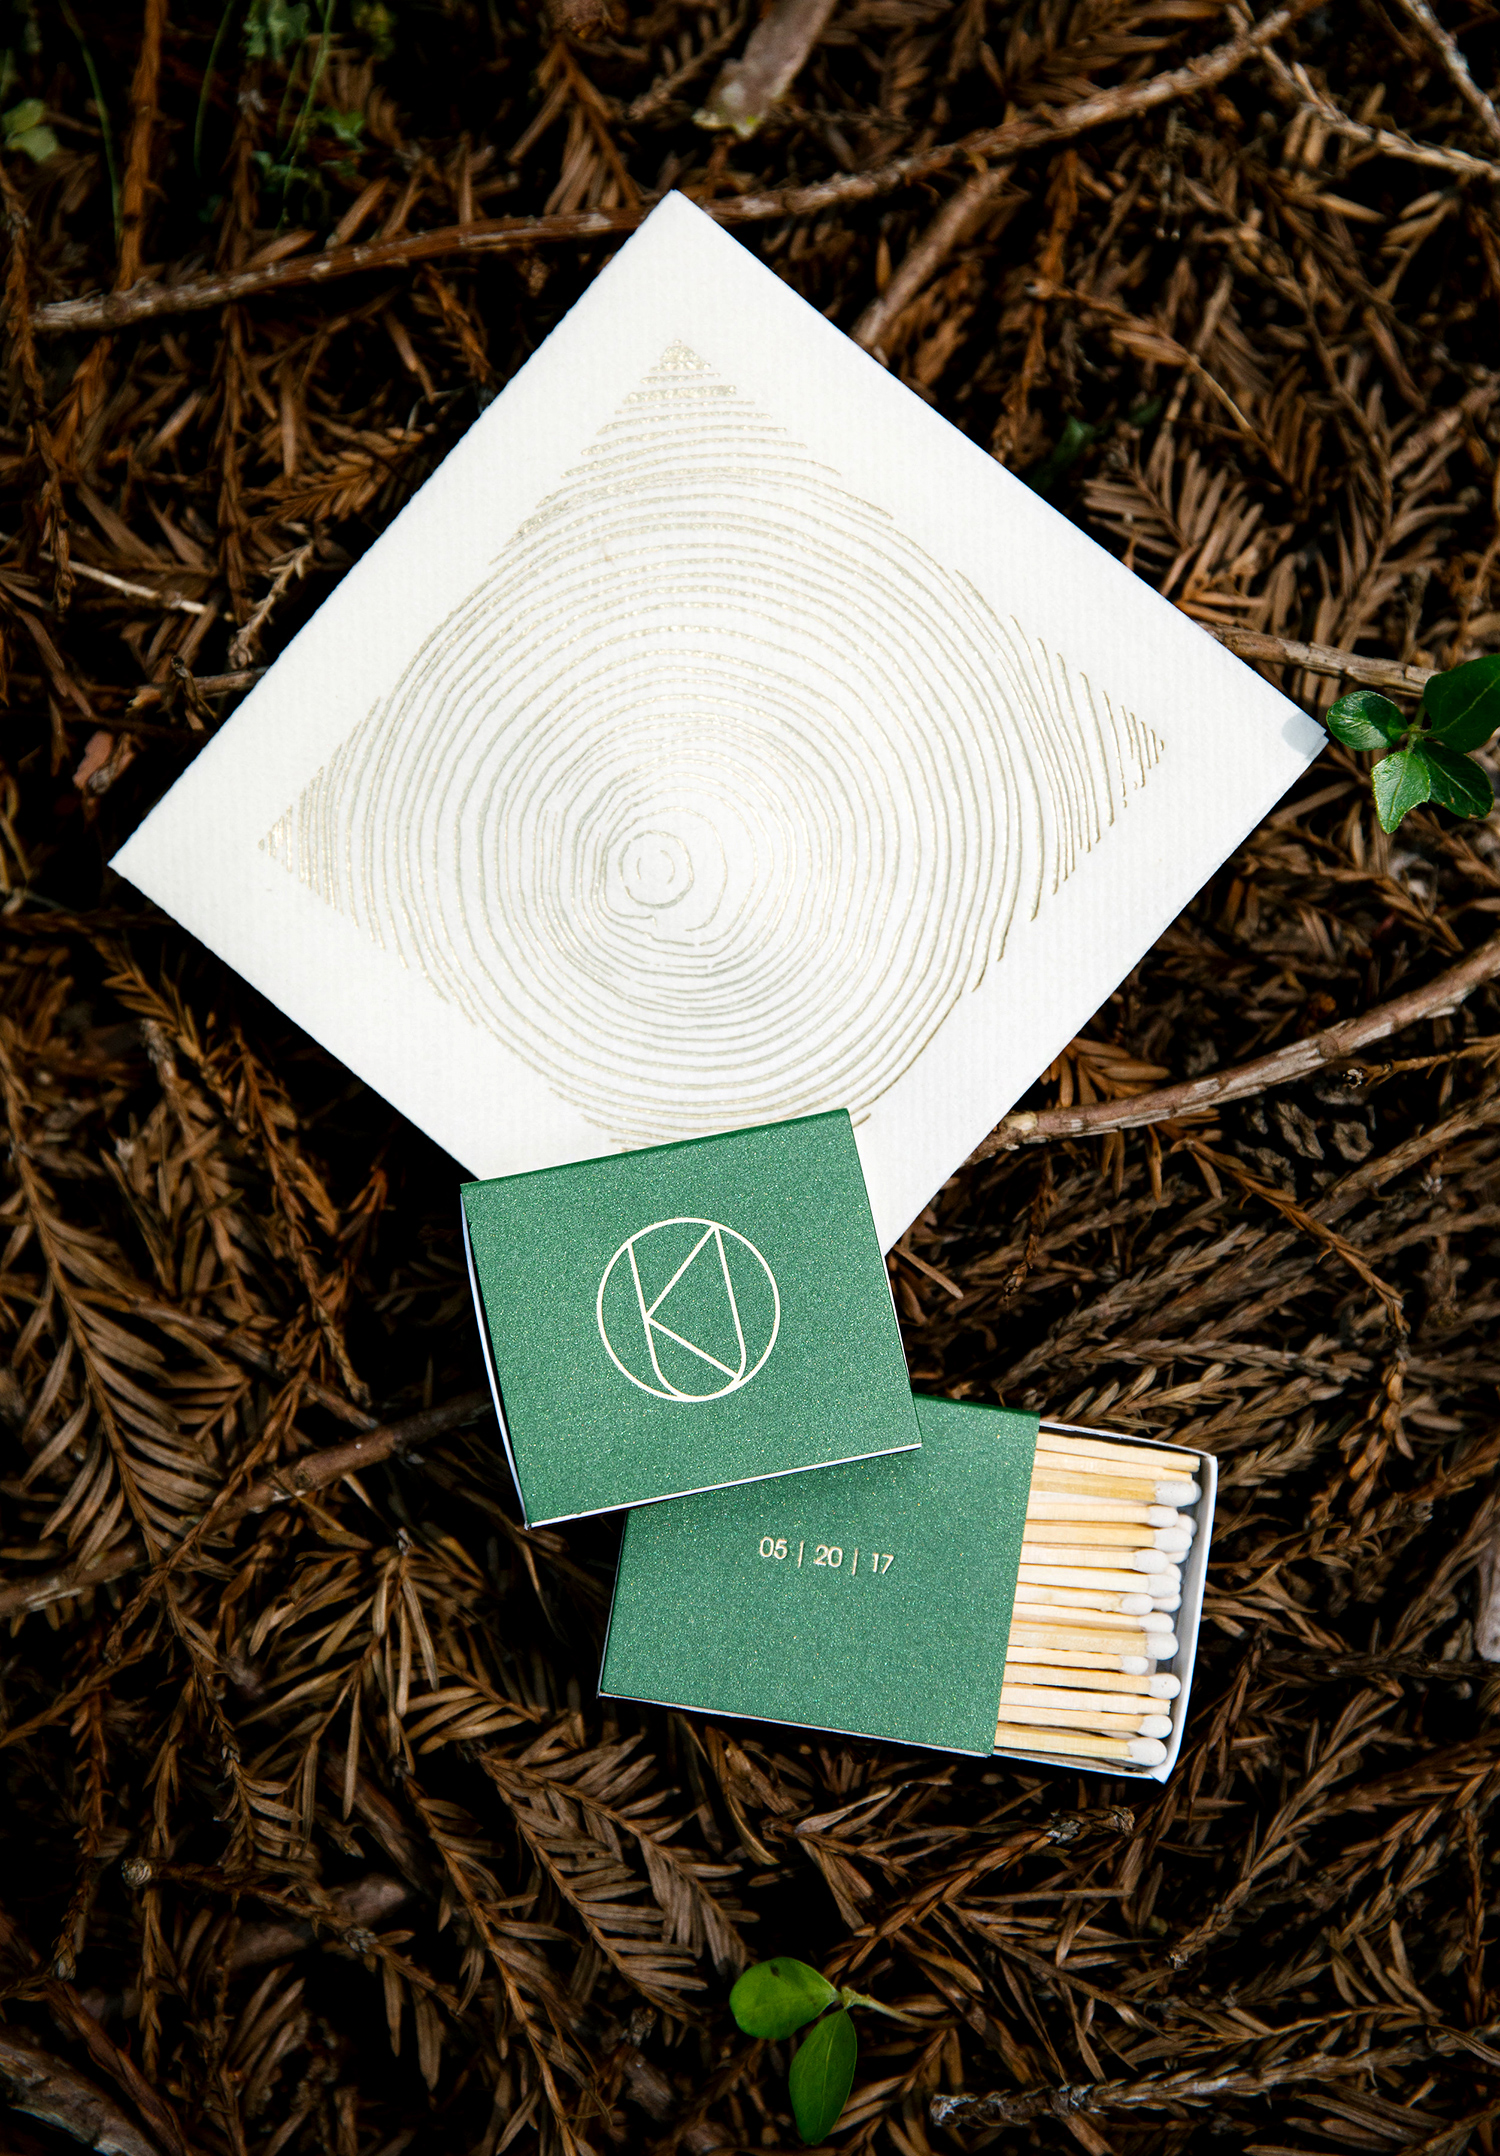 kendall jackson wedding matches and napkin